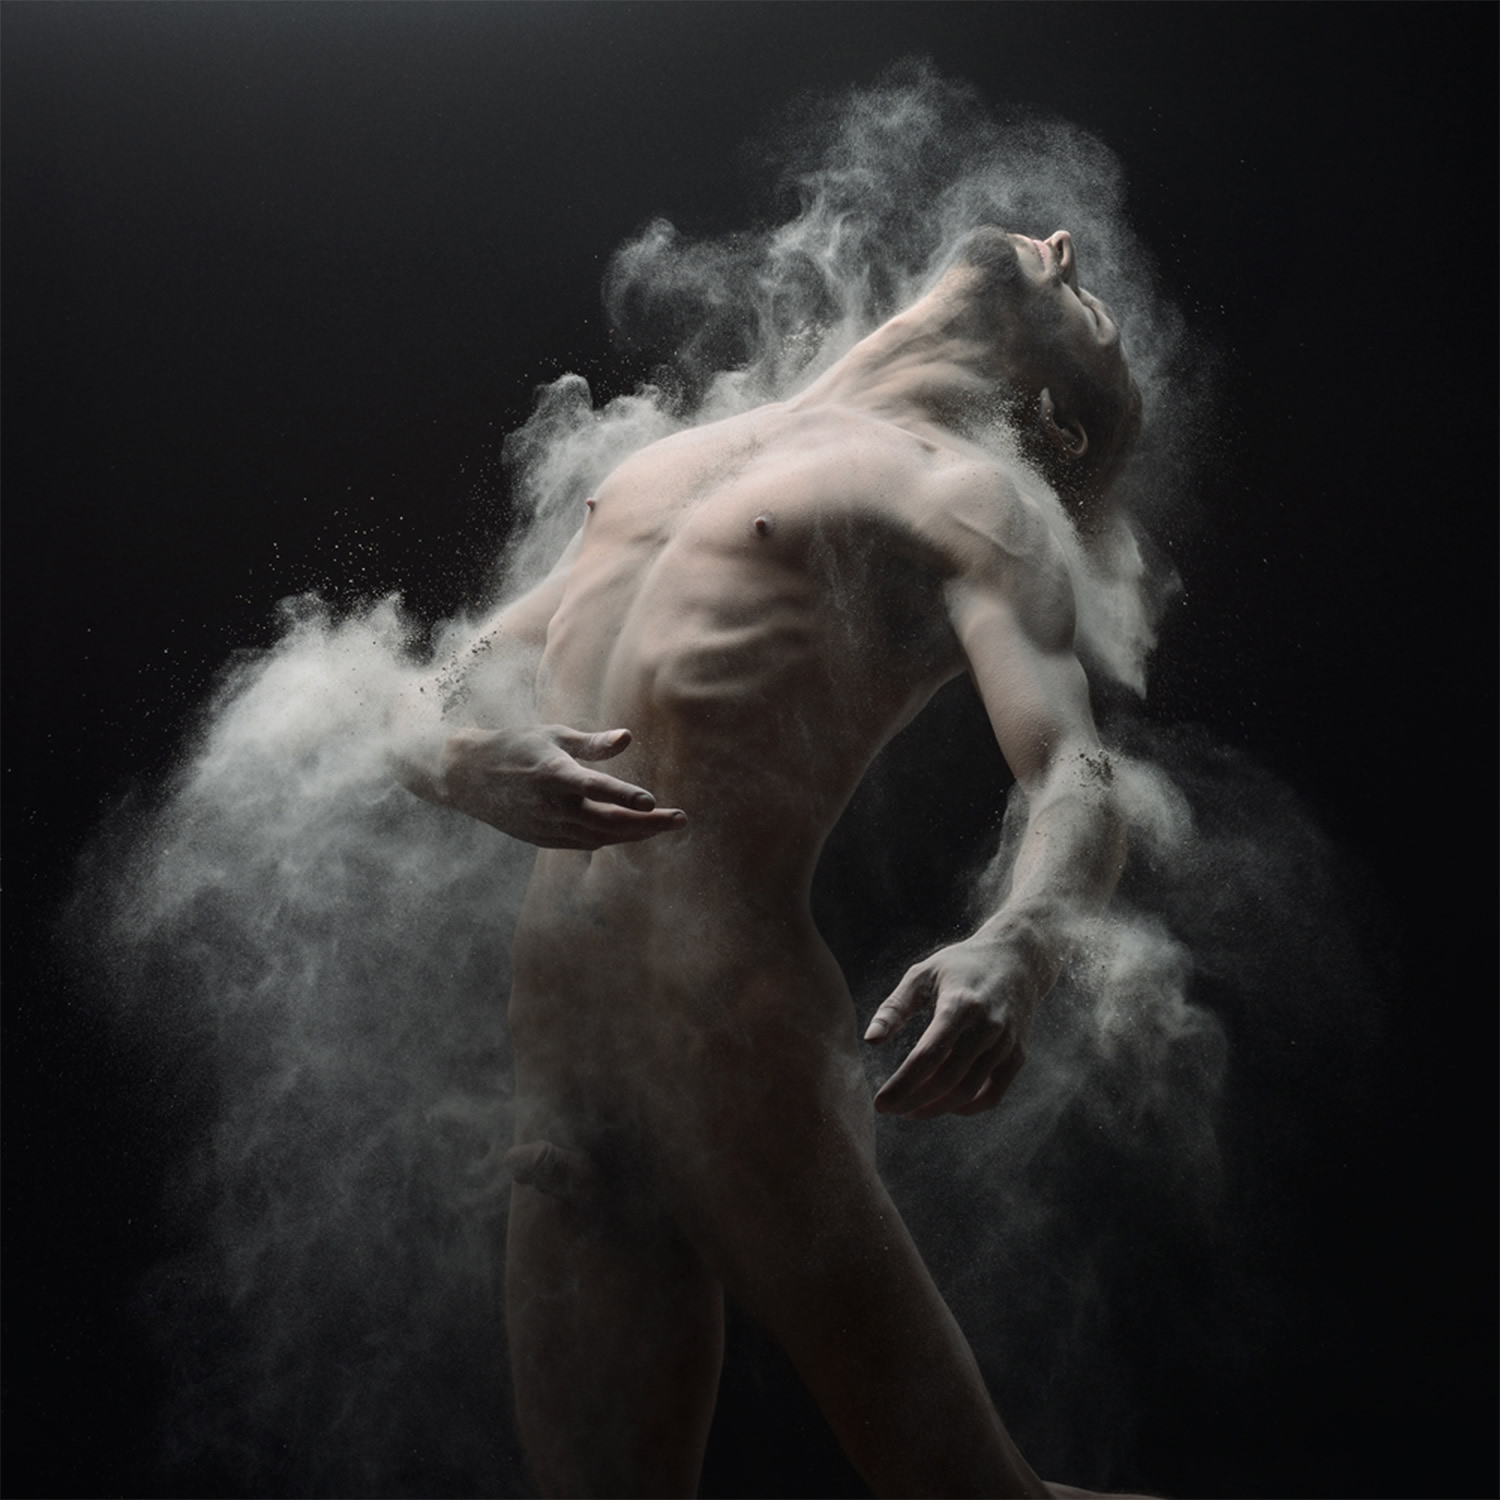 man in motion, powder in air, photo by olivier valsecchi